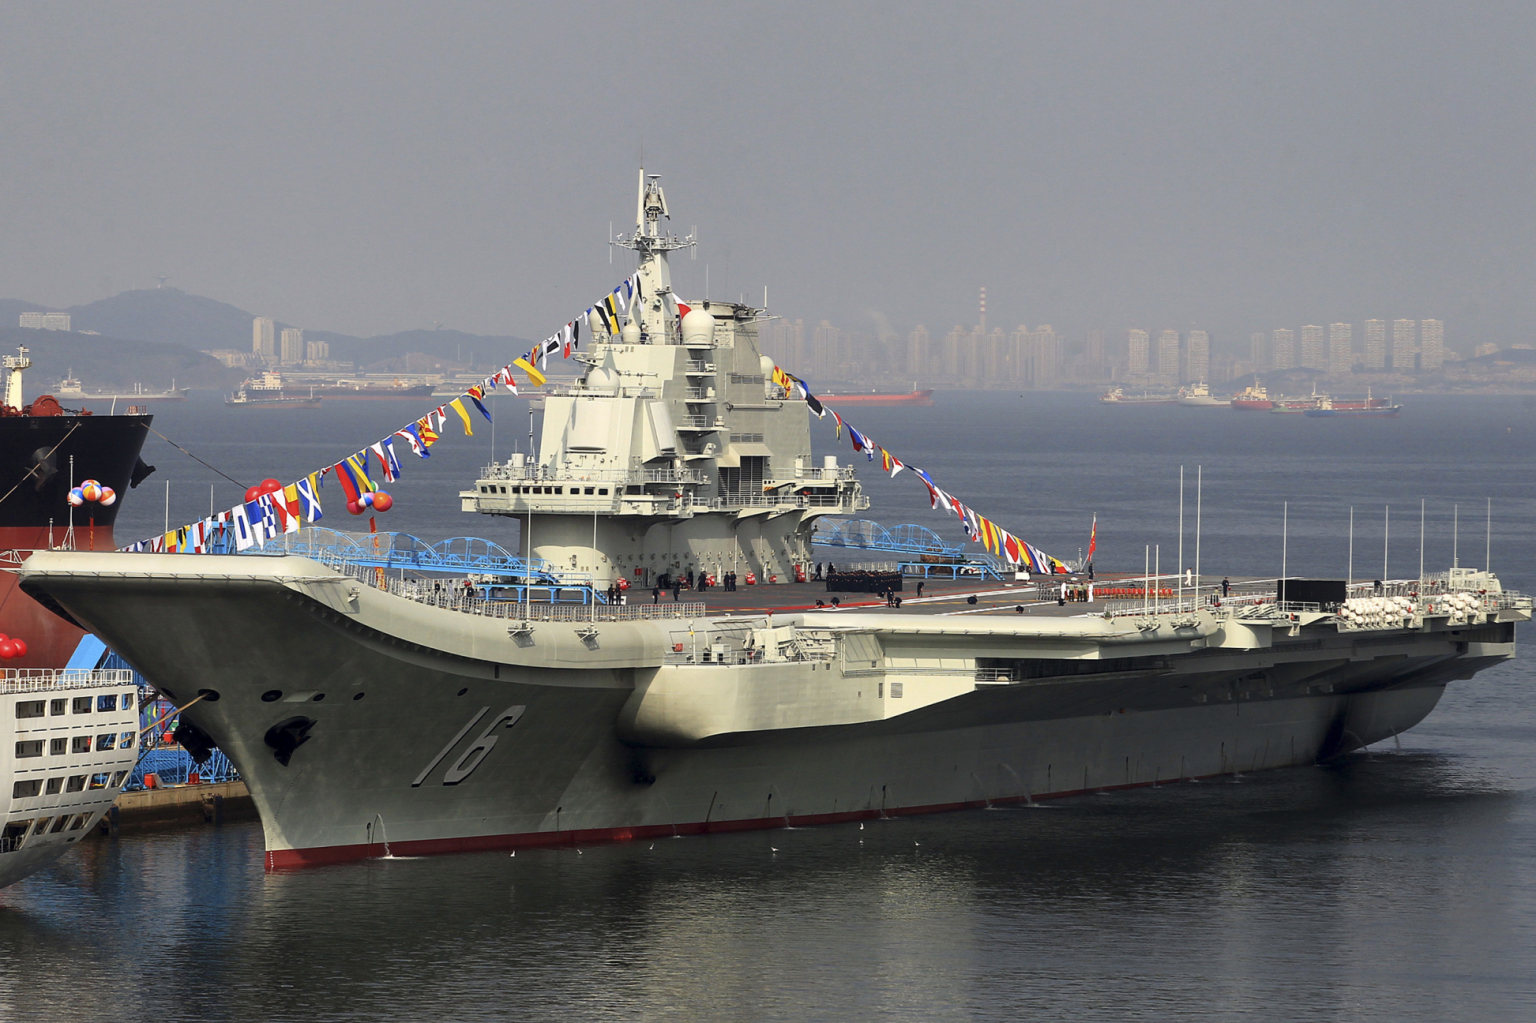 The Chinese aircraft carrier Liaoning during commissioning ceremonies. Image by Simon Yang.